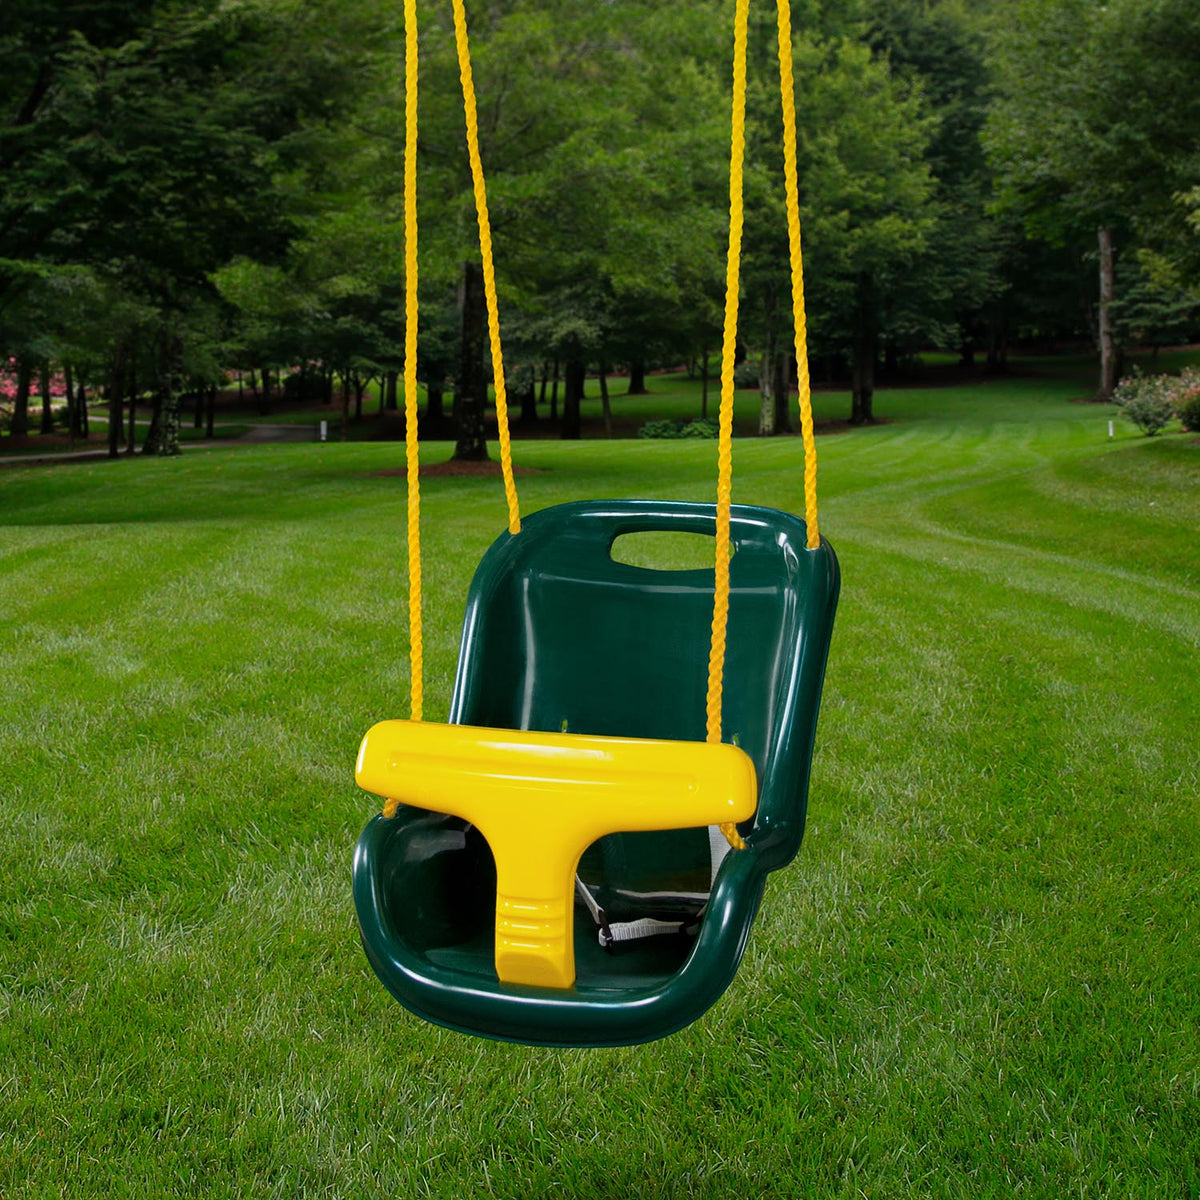 Gorilla-Playsets-Infant-Swing-Green